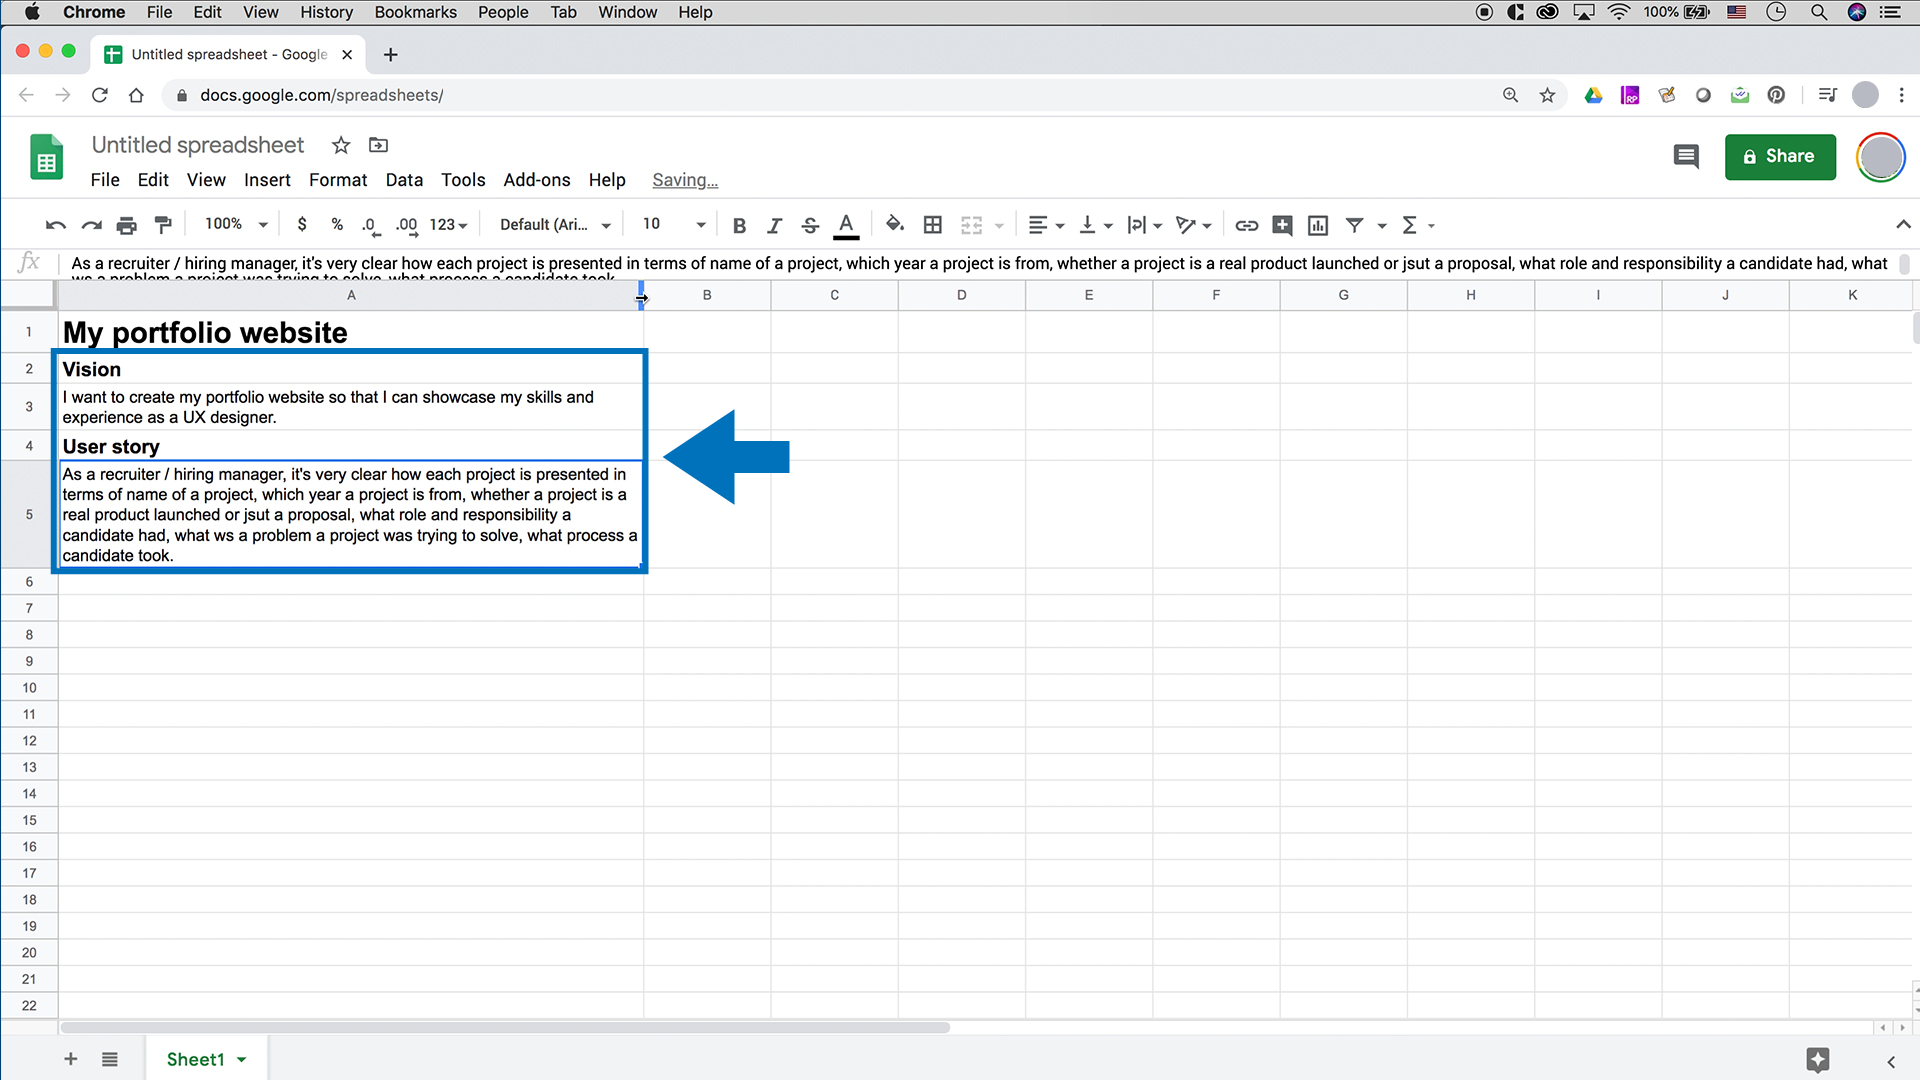 A screenshot of Google Sheets with a vision and a user story typed in.